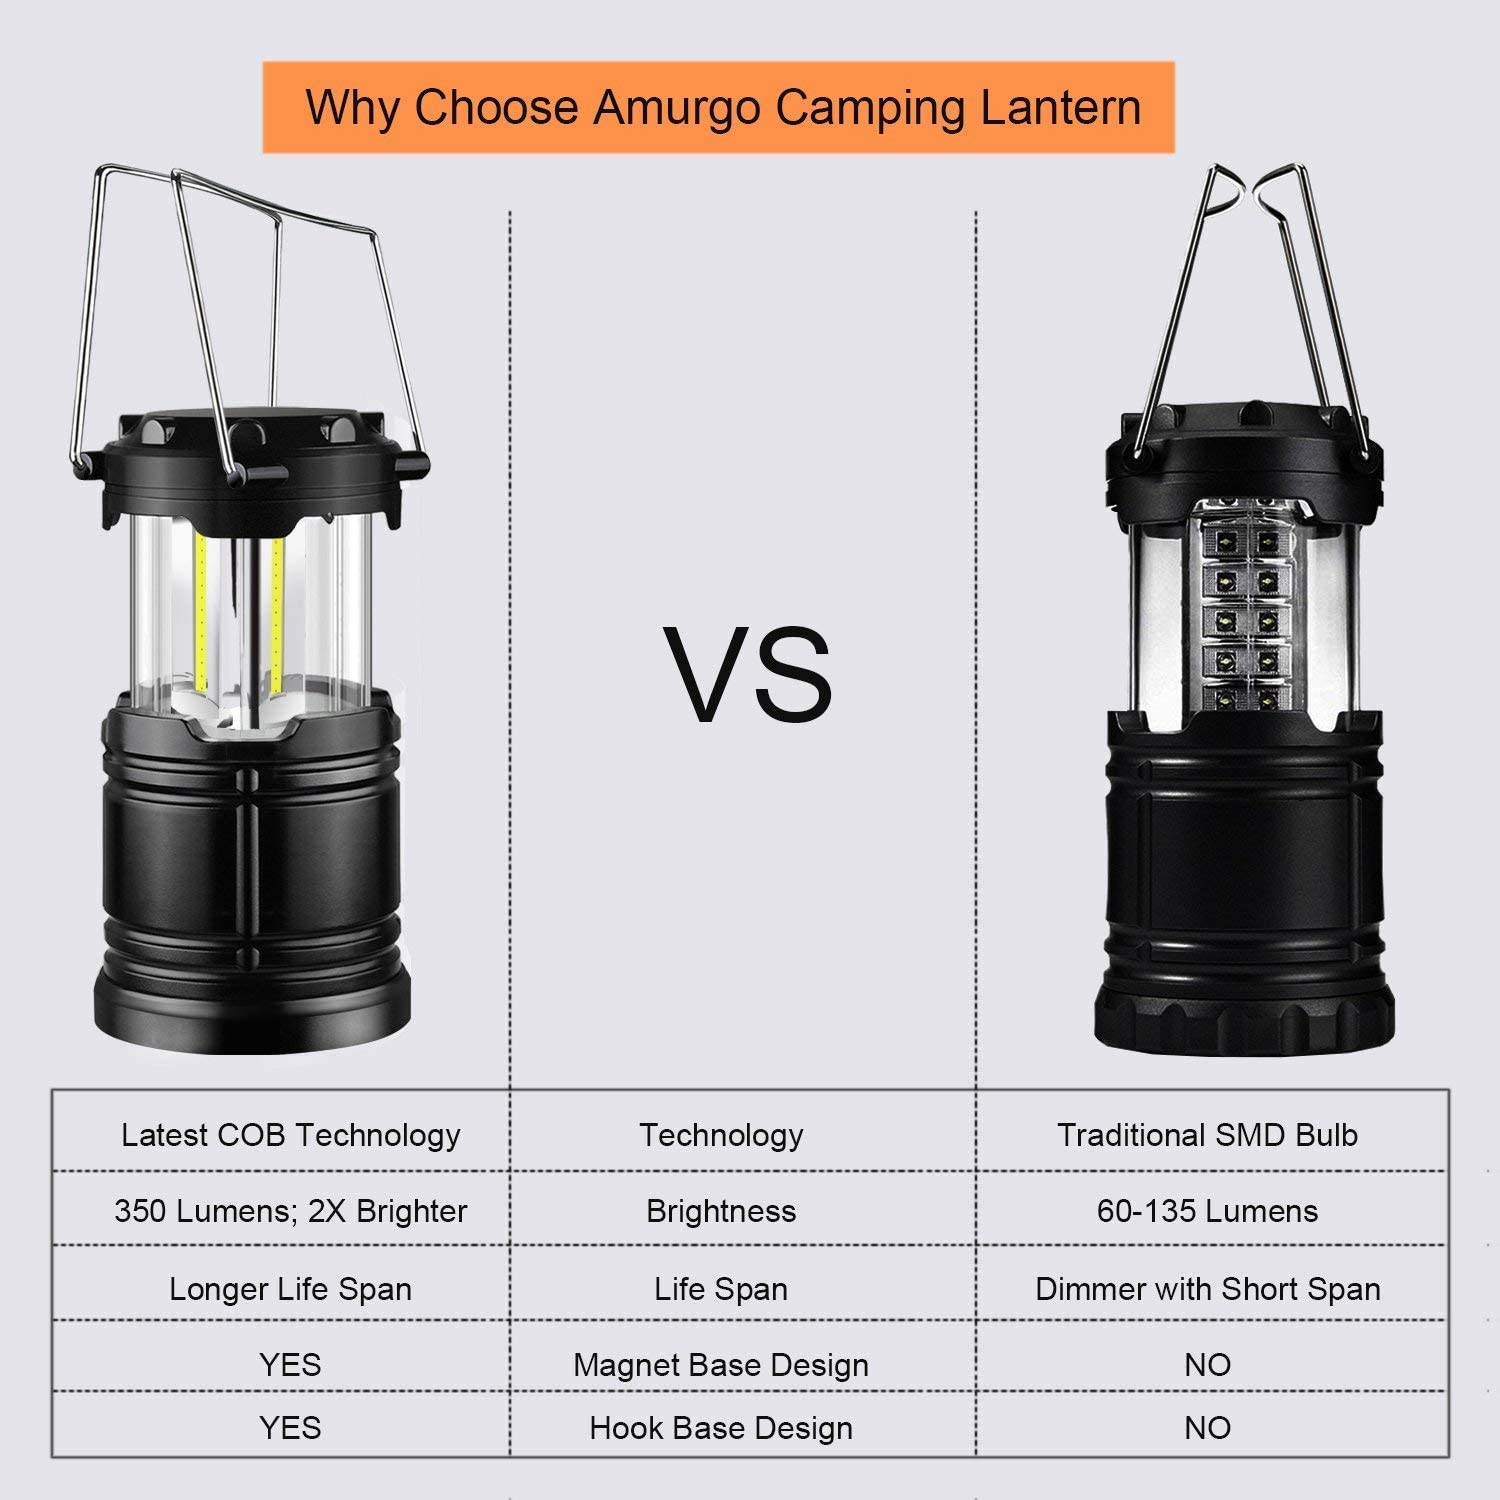 Amurgo LED Camping Lanterns, Outdoor 350 Lumens Portable COB Camp Lantern Battery Operated with LED Flashlight for Camping, Hiking, Emergency, Hurricane, Outages, Car